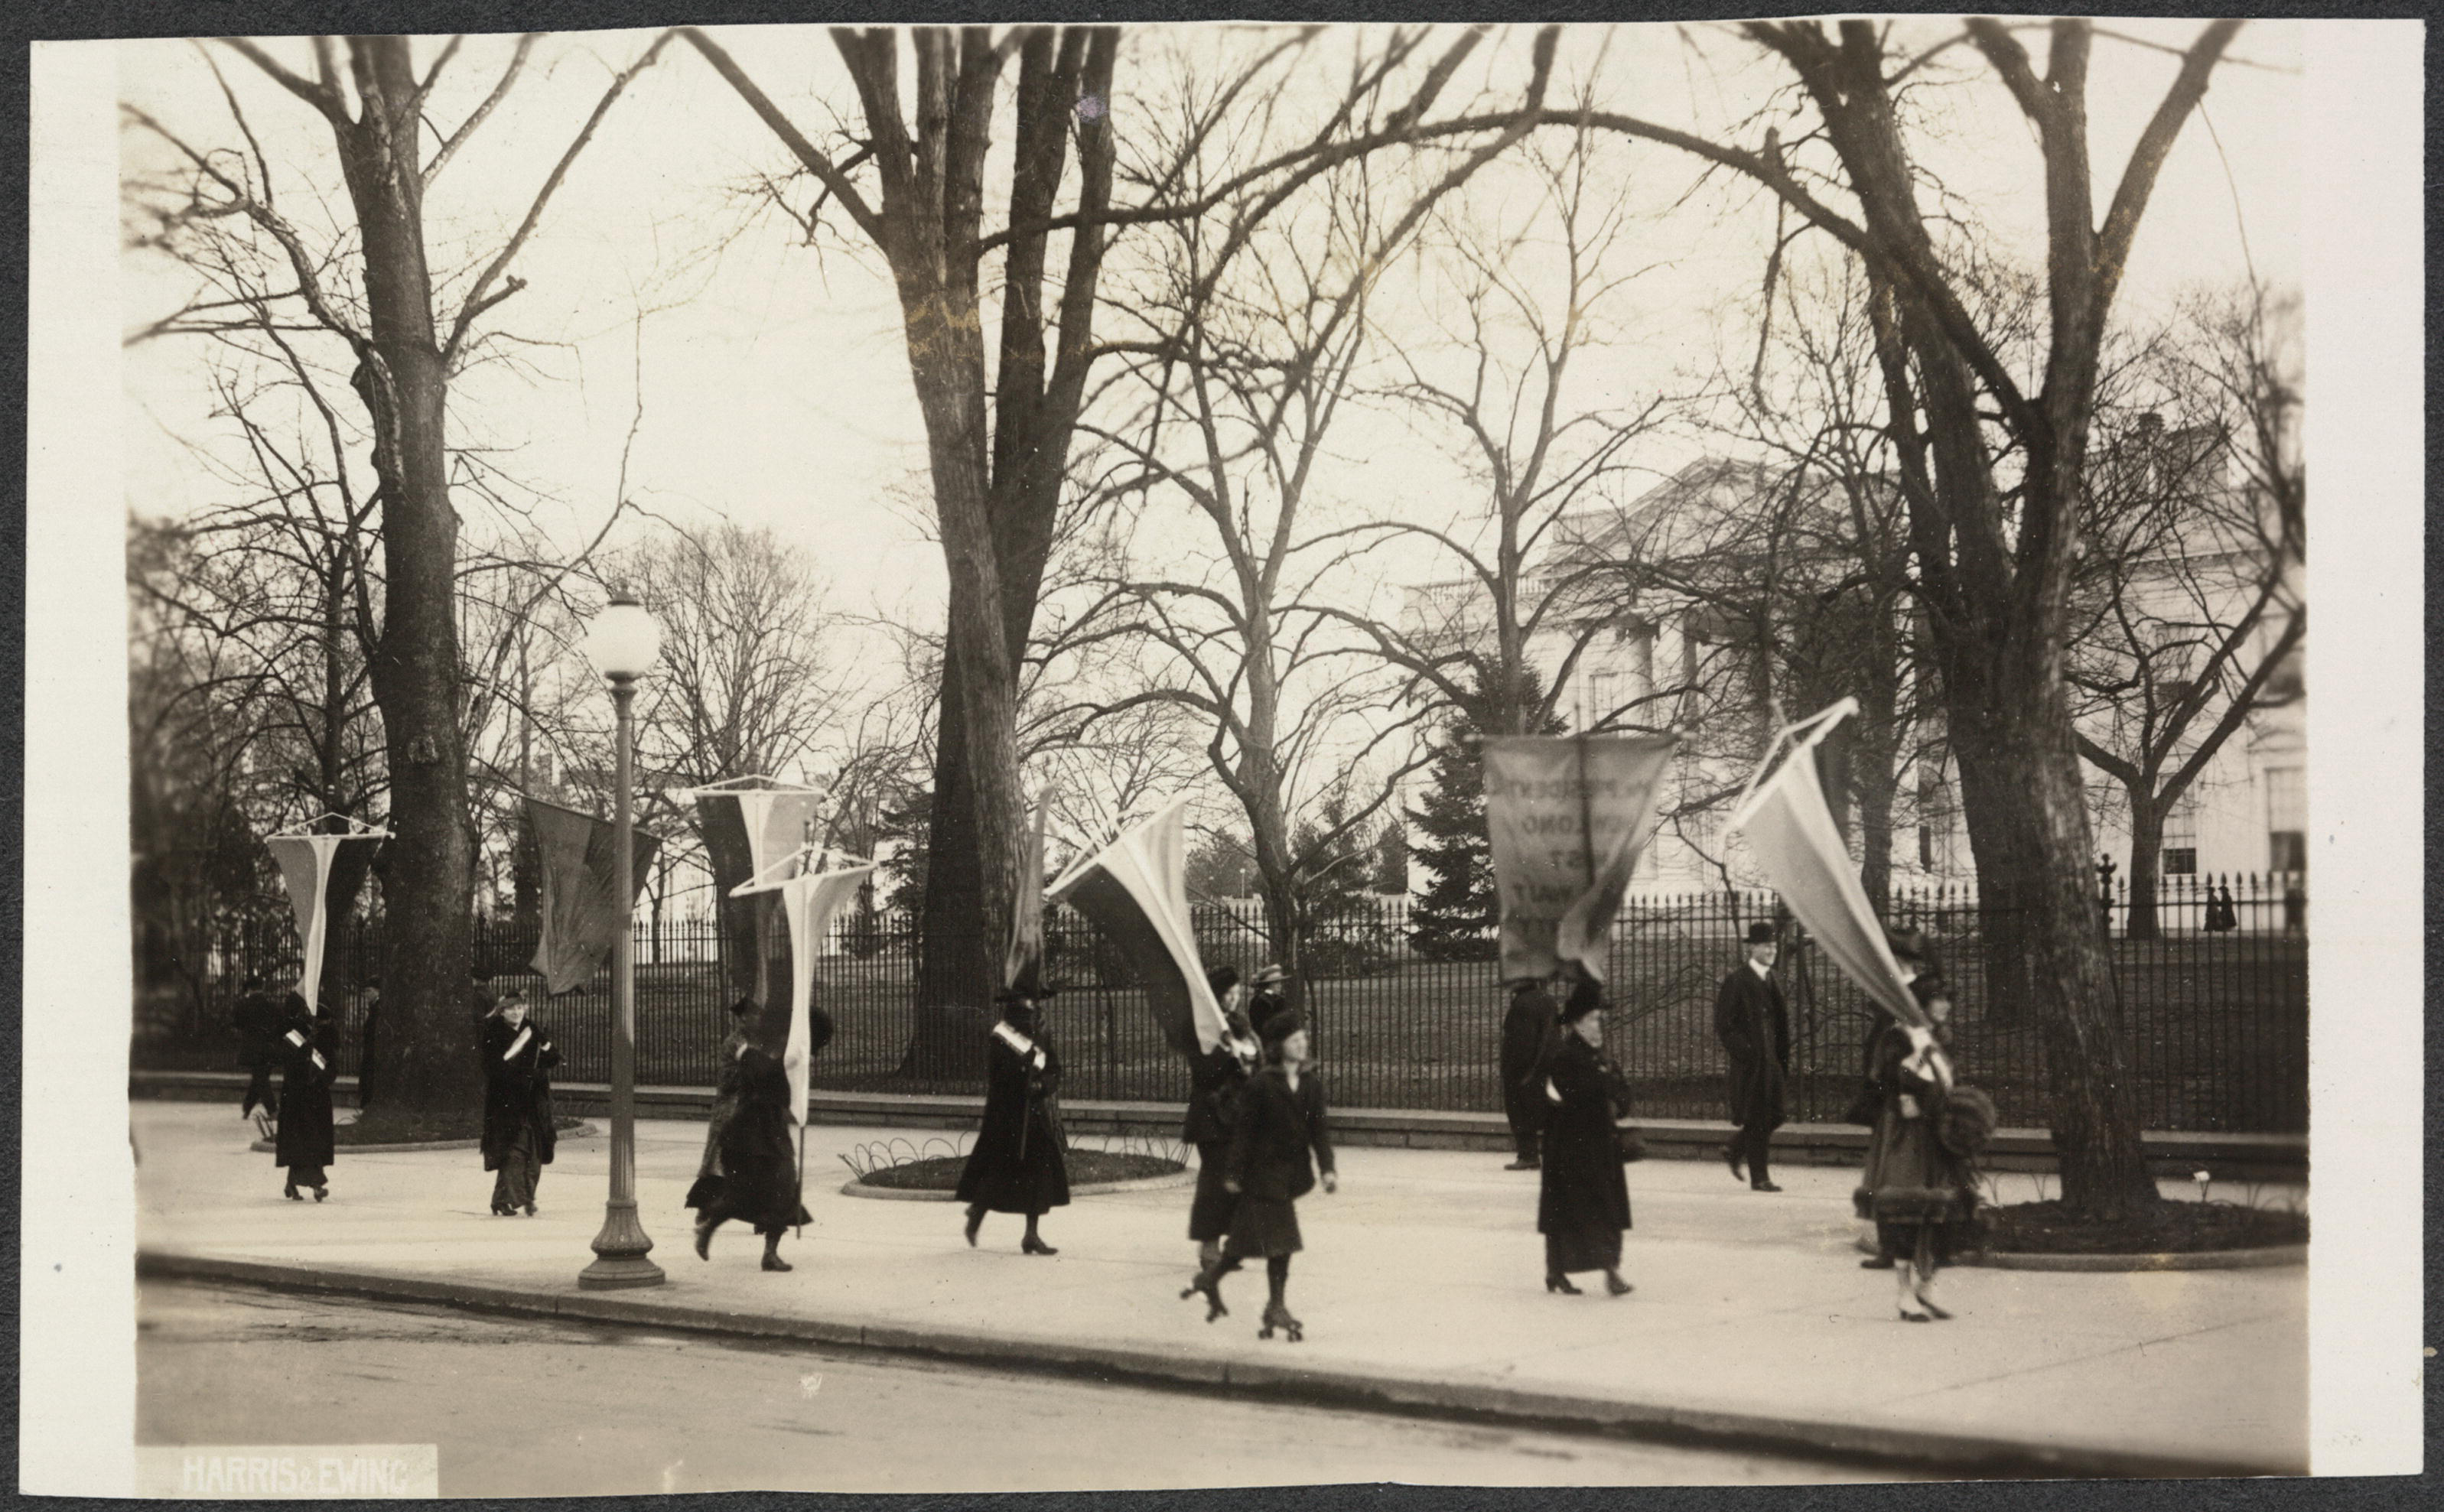 Photograph of suffragists marching in contingent with banners, picketing outside on the sidewalk in front of the White House. A woman skates by in foreground on roller skates, and a man in bowler hat strolls down sidewalk near fence.